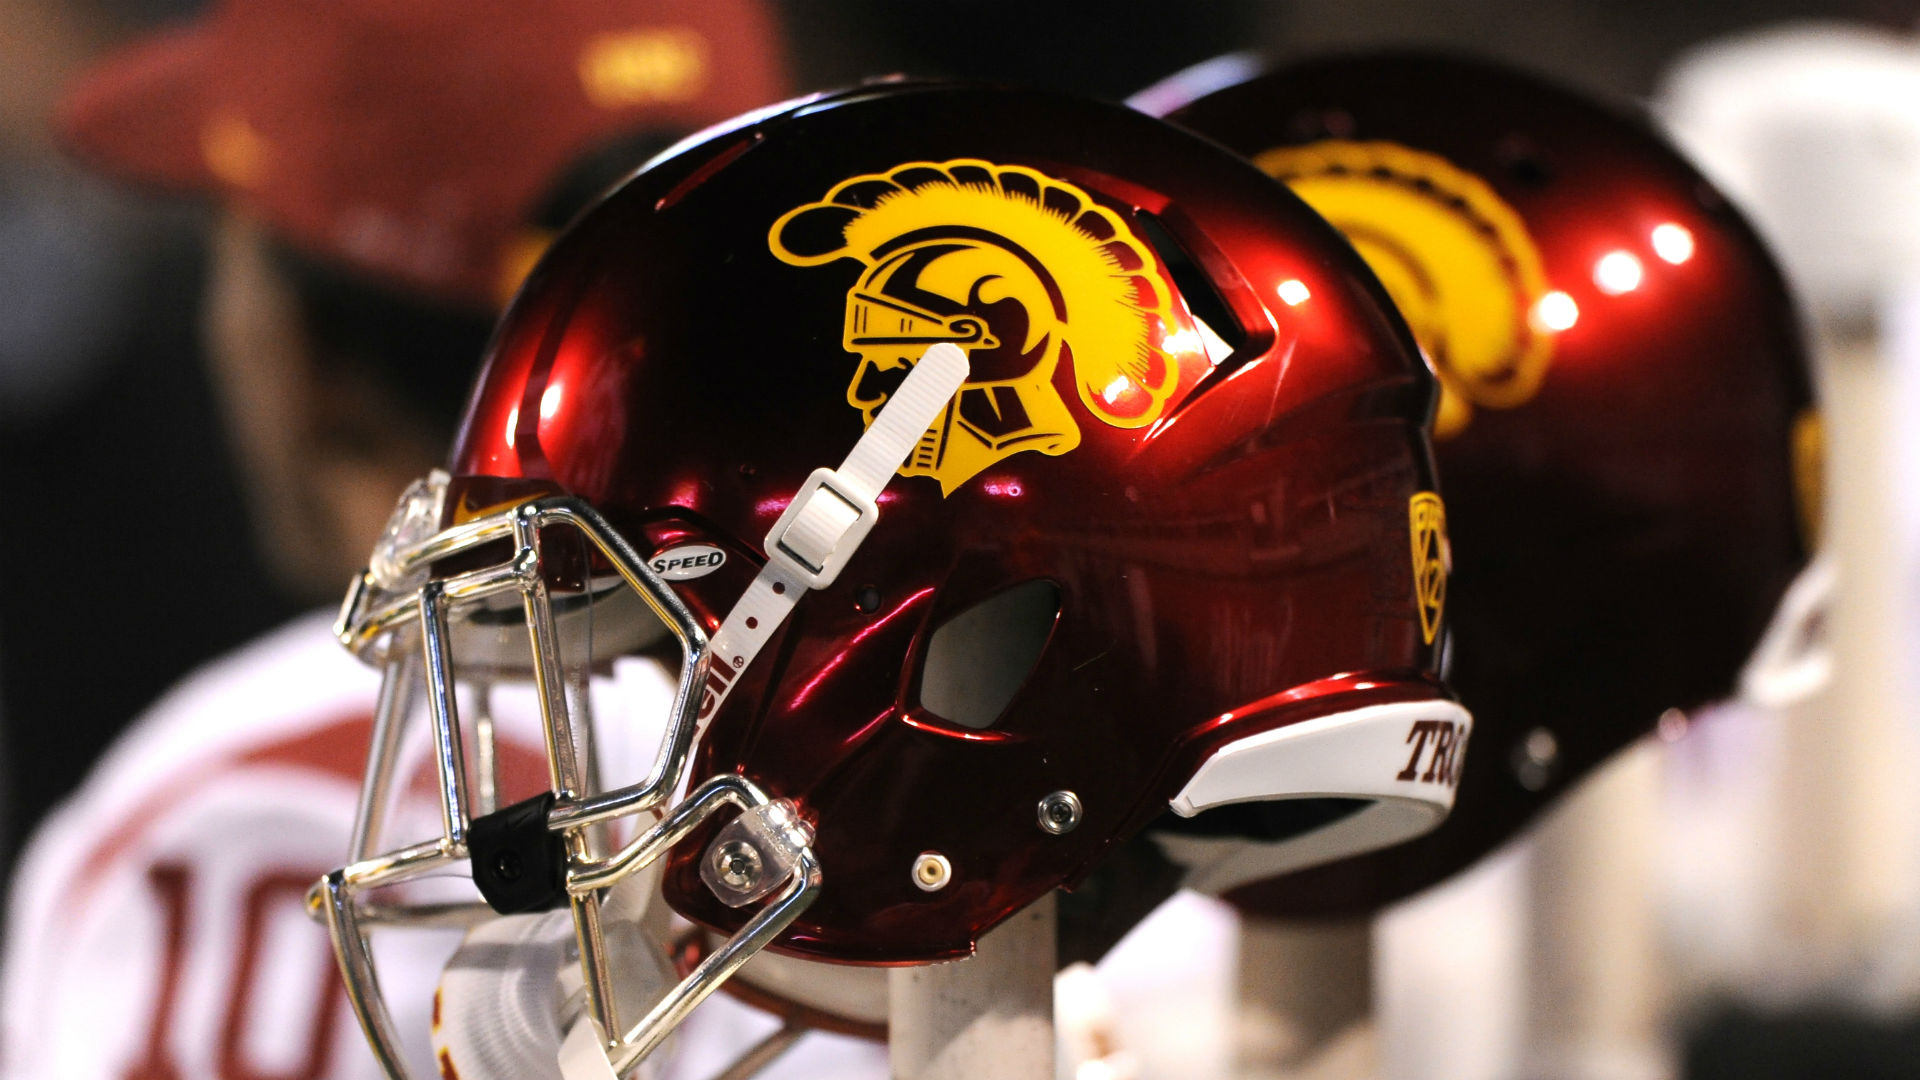 USC pulls football booster's season tickets for 'blatantly racist' tweets promoting violence toward protesters 1